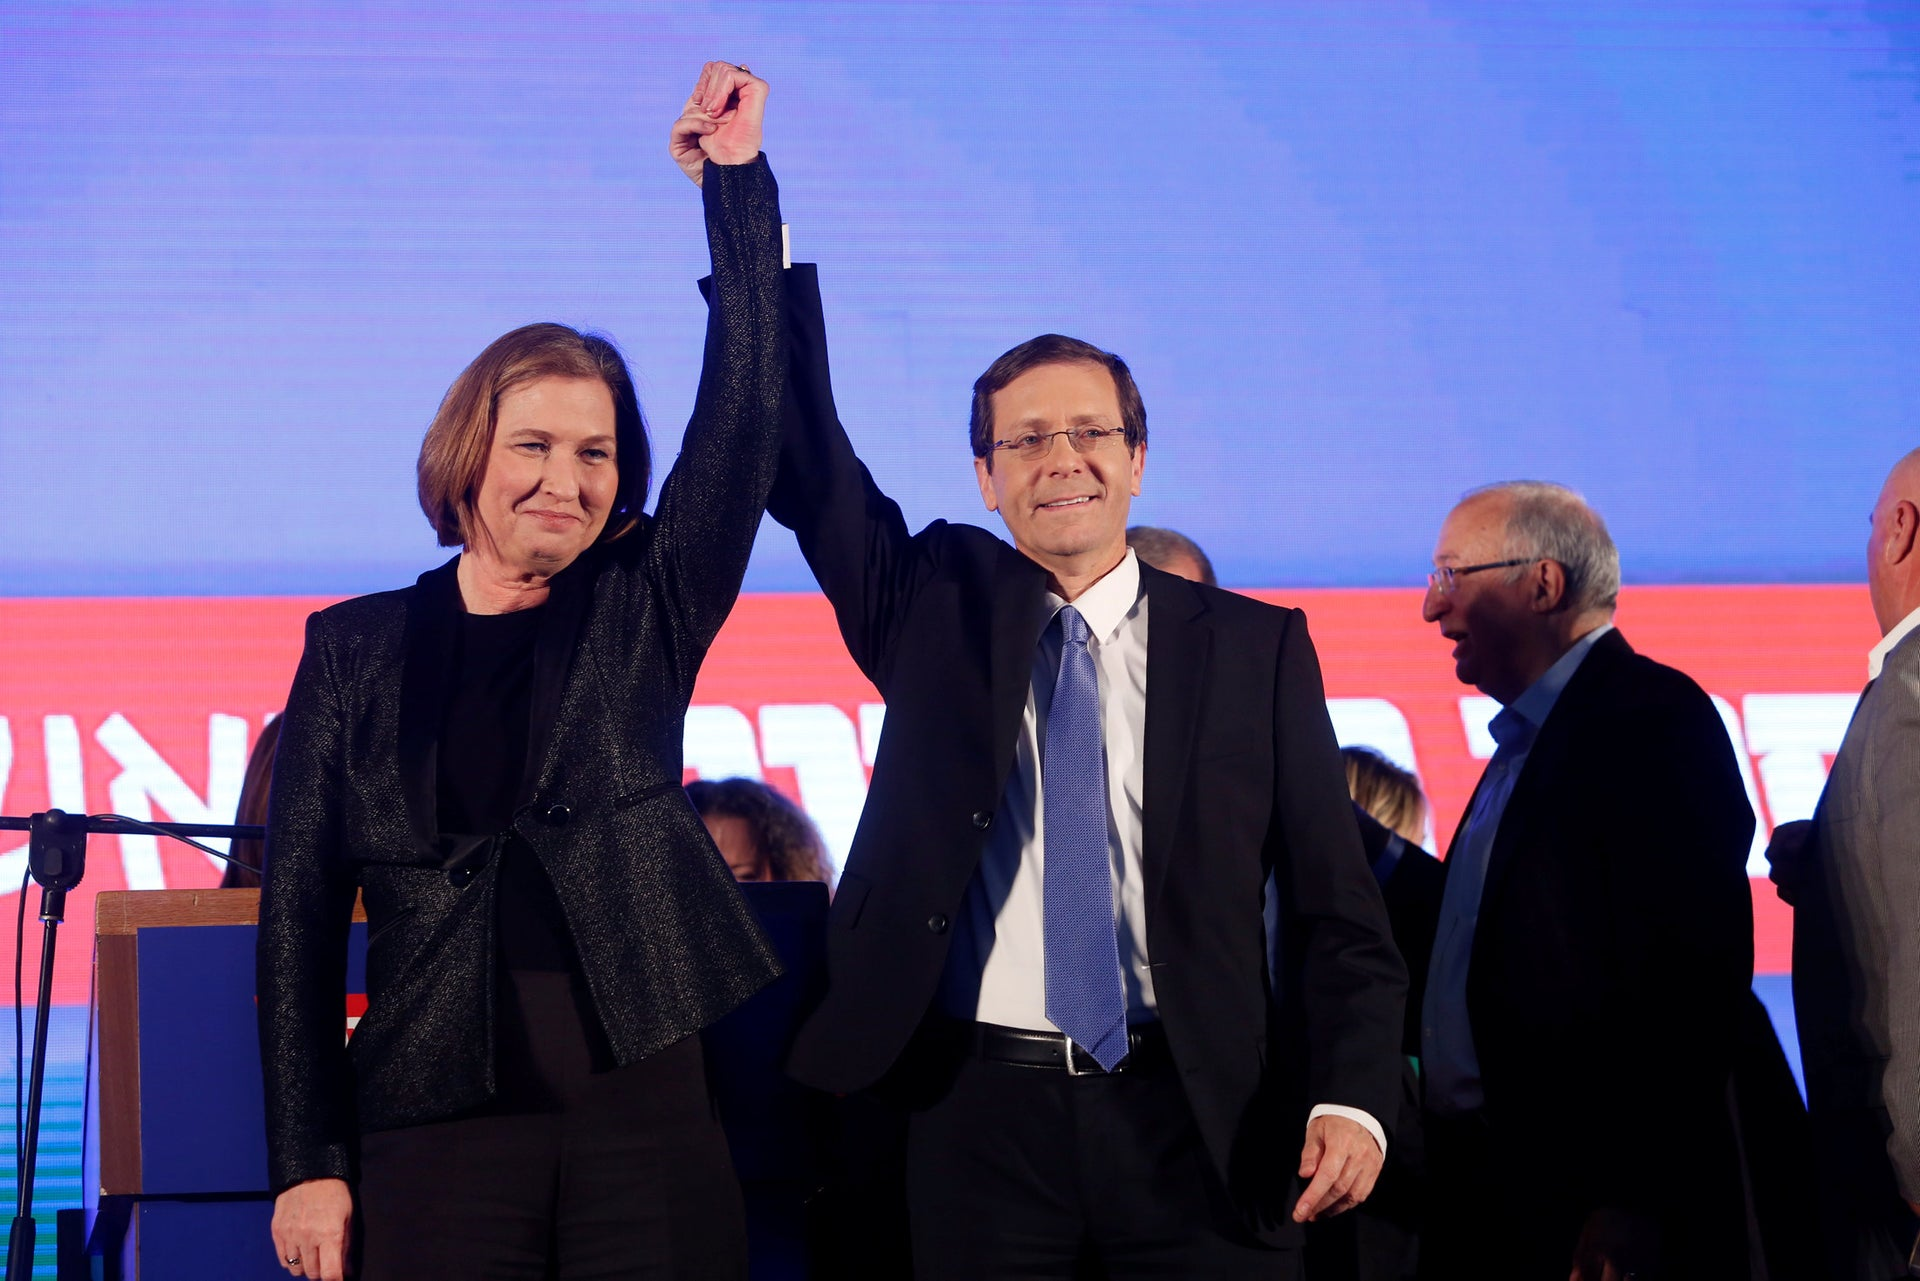 Tzipi Livni and Isaac Herzog at the Zionist Union party election headquarters in Tel Aviv, Israel, March 18, 2015.